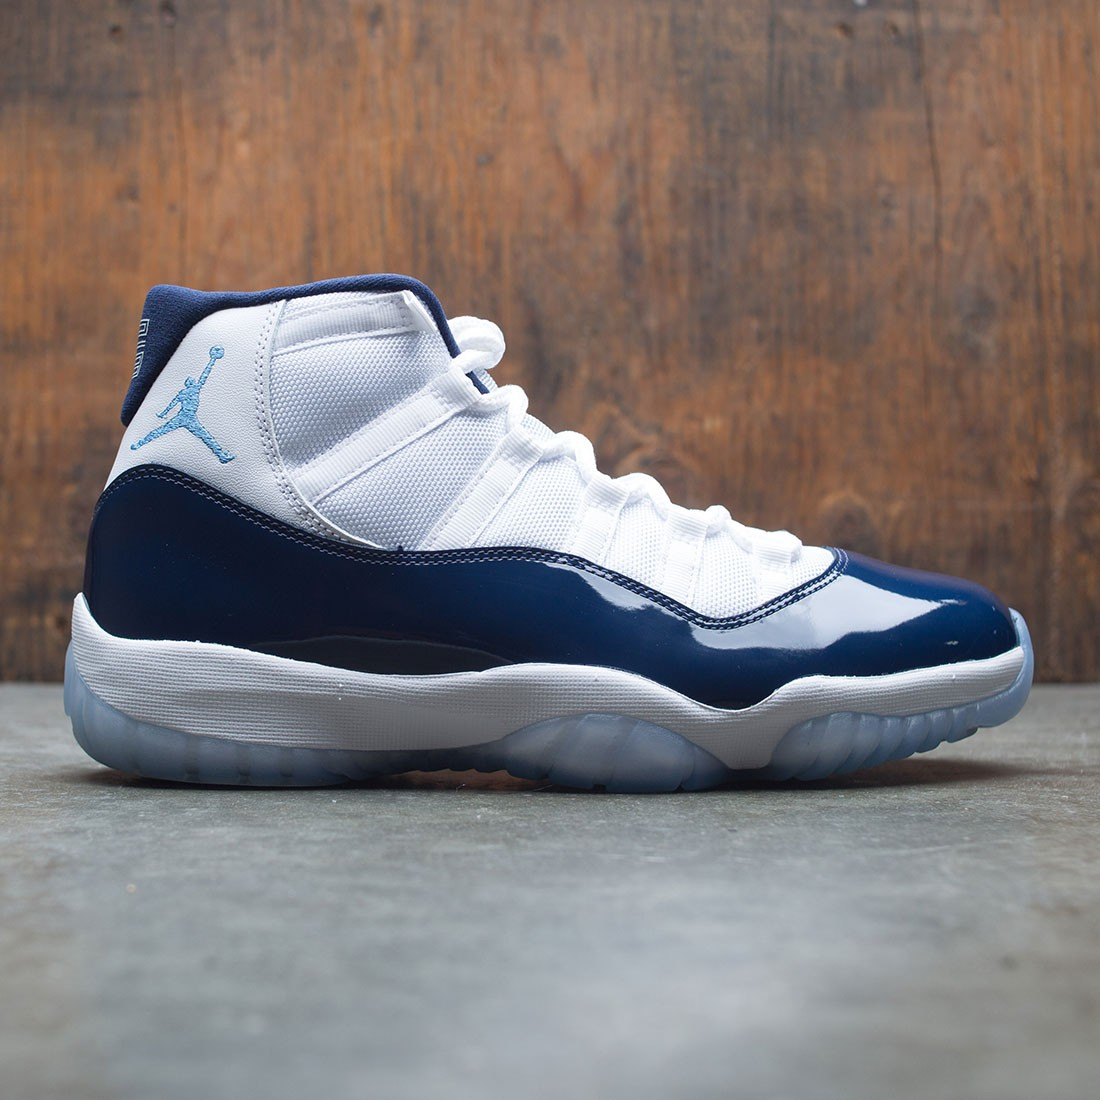 detailed look f95e0 df19b ... shoes for winter white black 41e5b faa95  promo code jordan men air  jordan 11 retro white university blue midnight navy 79161 2286f